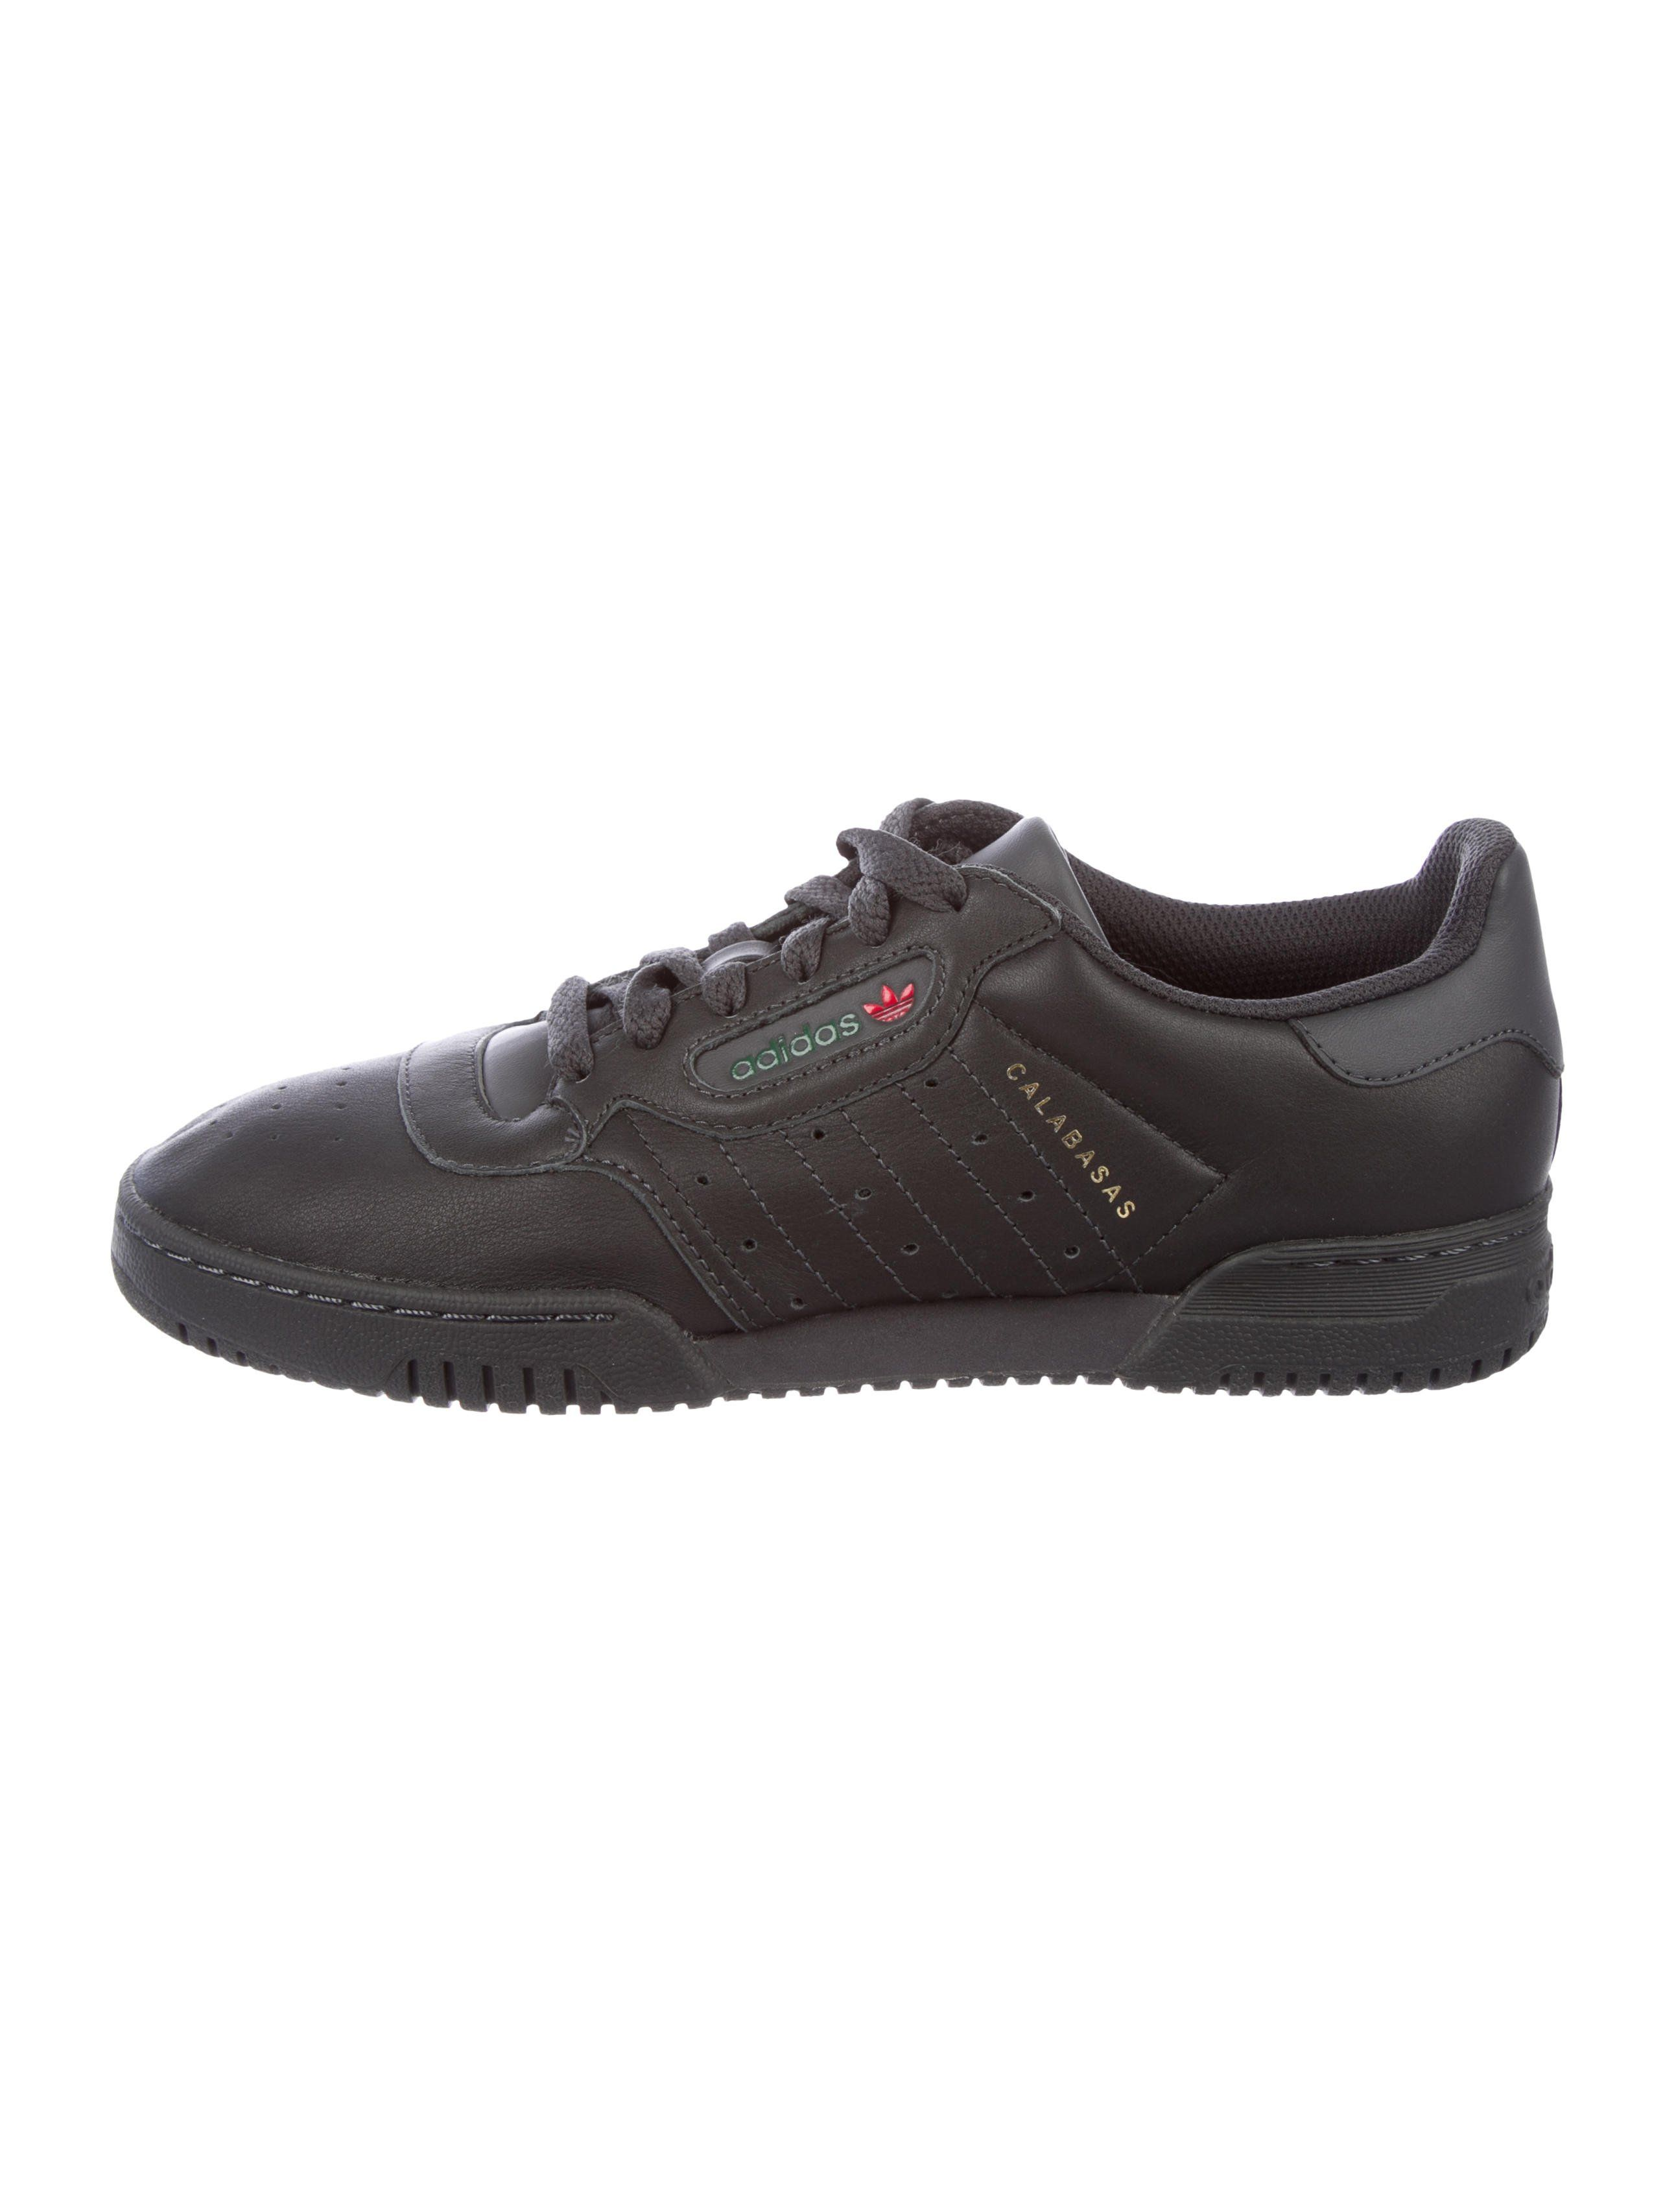 5af73b0cd91fd Men s Core Black leather Adidas Yeezy Powerphase Calabasas round-toe  low-top sneakers with perforated accents